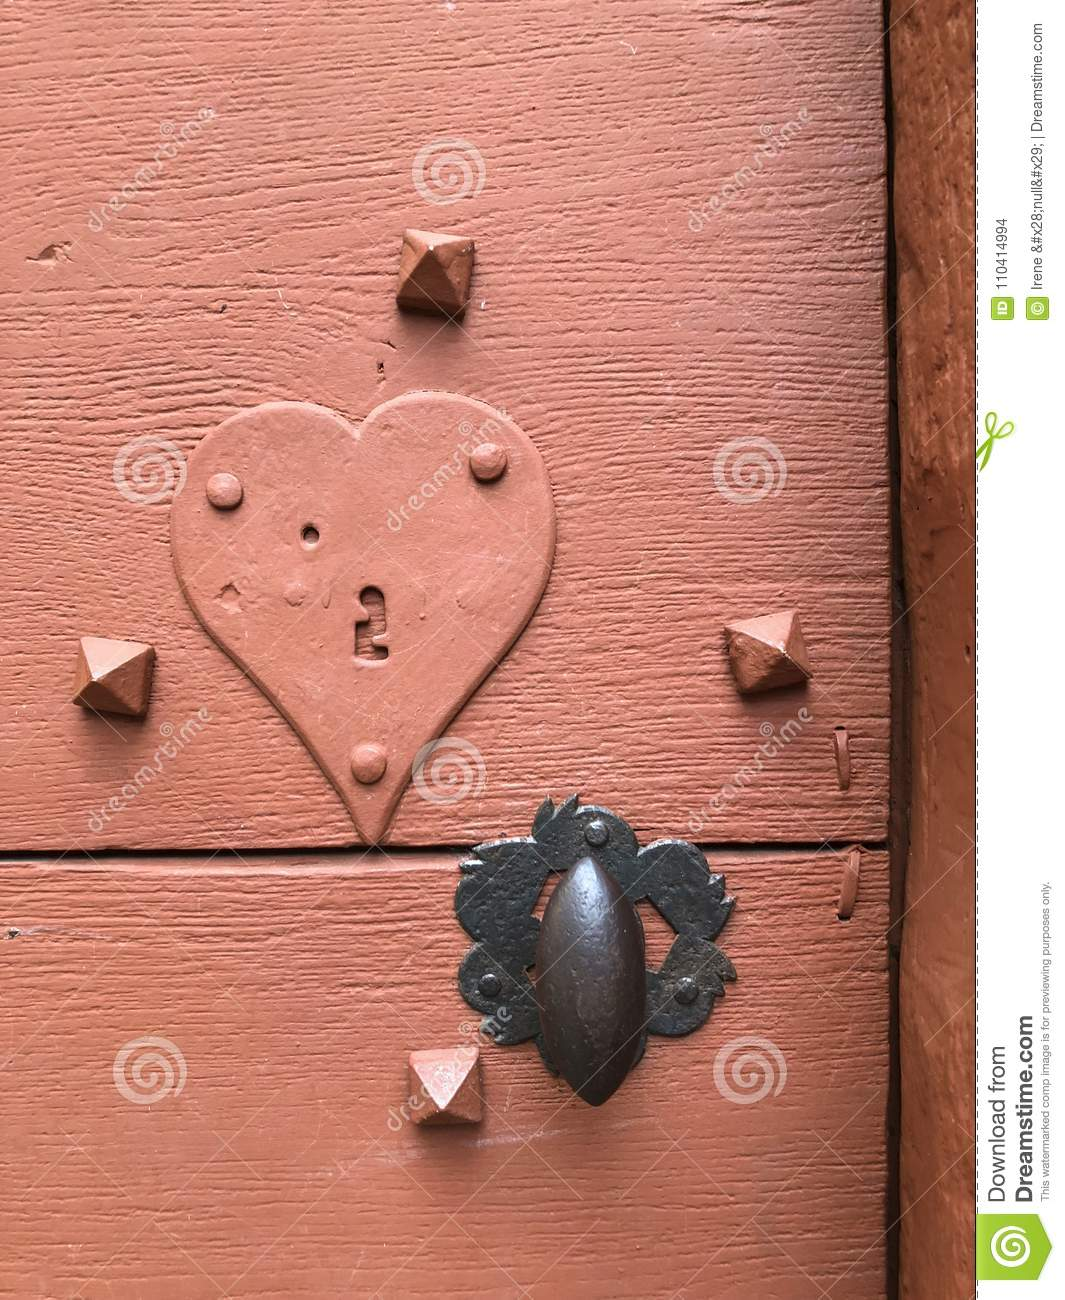 Ancient door with lock- keyhole with a heart